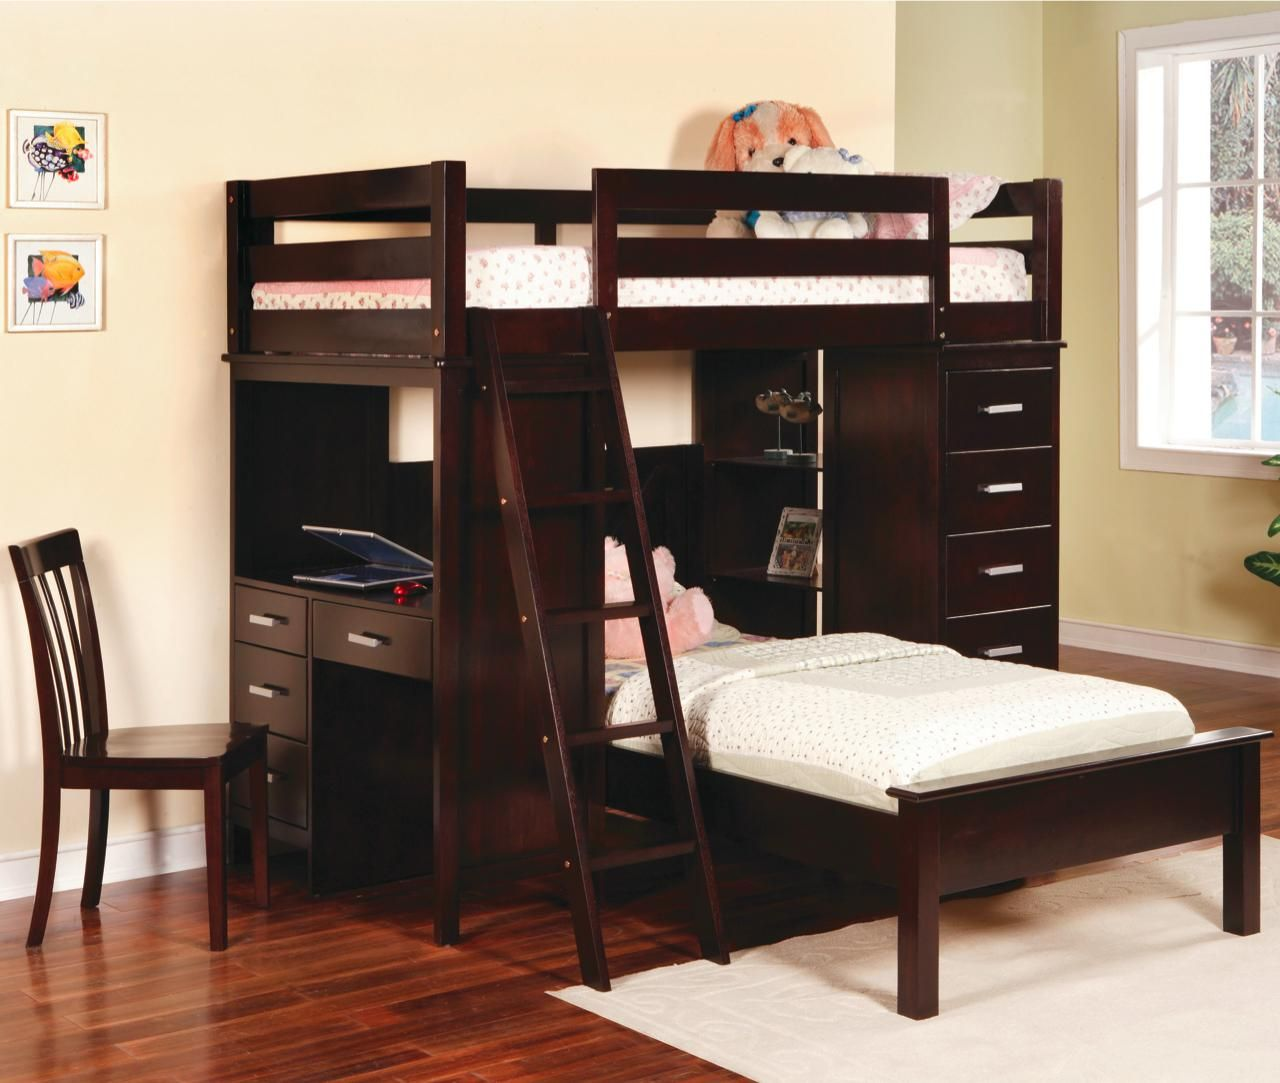 Cool Details About Cappuccino Workstation Complete Bunk Bed Loft Pdpeps Interior Chair Design Pdpepsorg